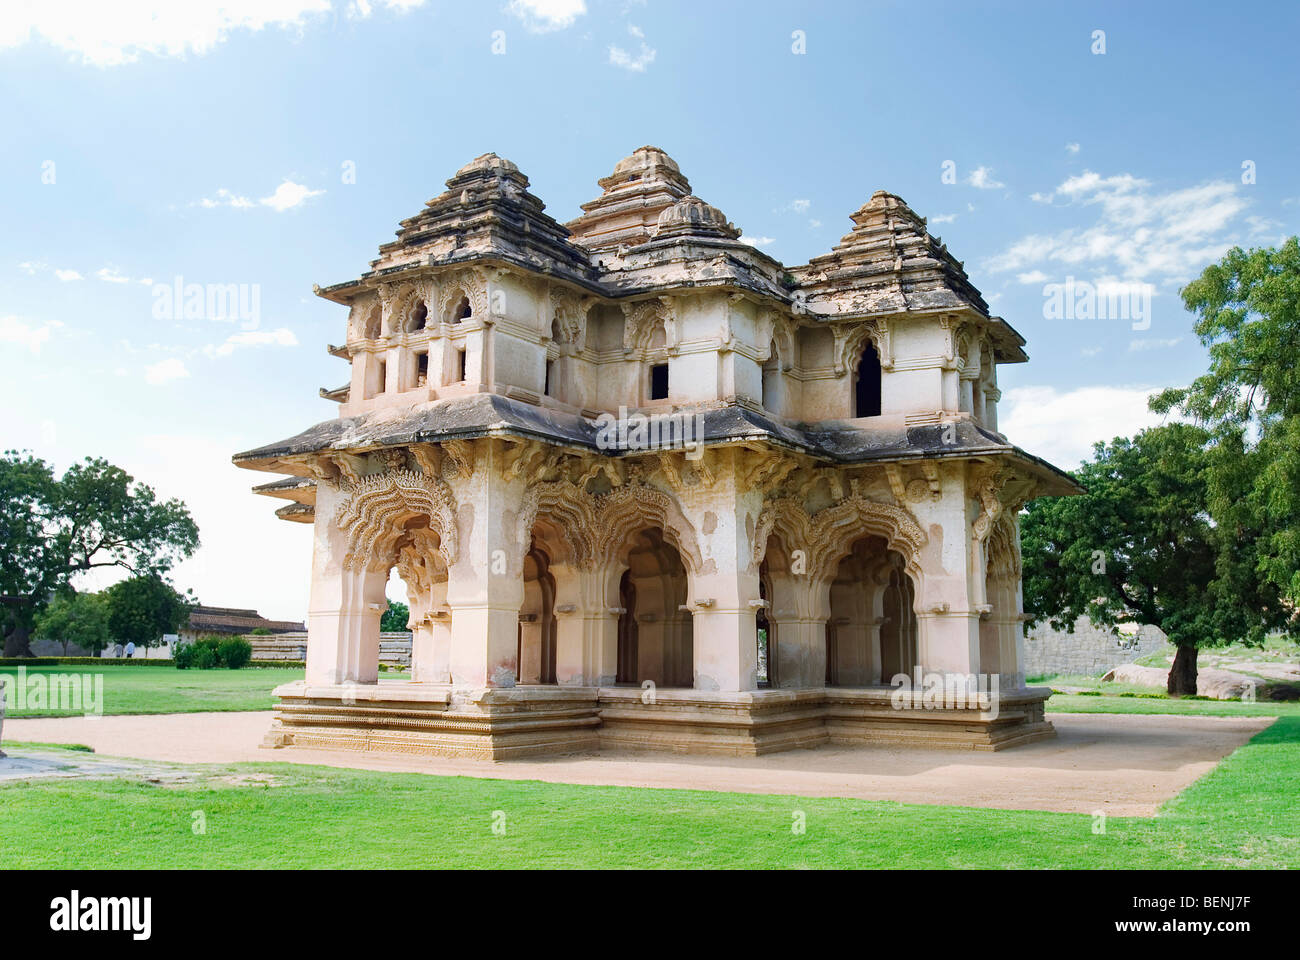 The lotus mahal shaped like a lotus flower from the top and has a the lotus mahal shaped like a lotus flower from the top and has a two story structure with beautiful arch ways set in geometric izmirmasajfo